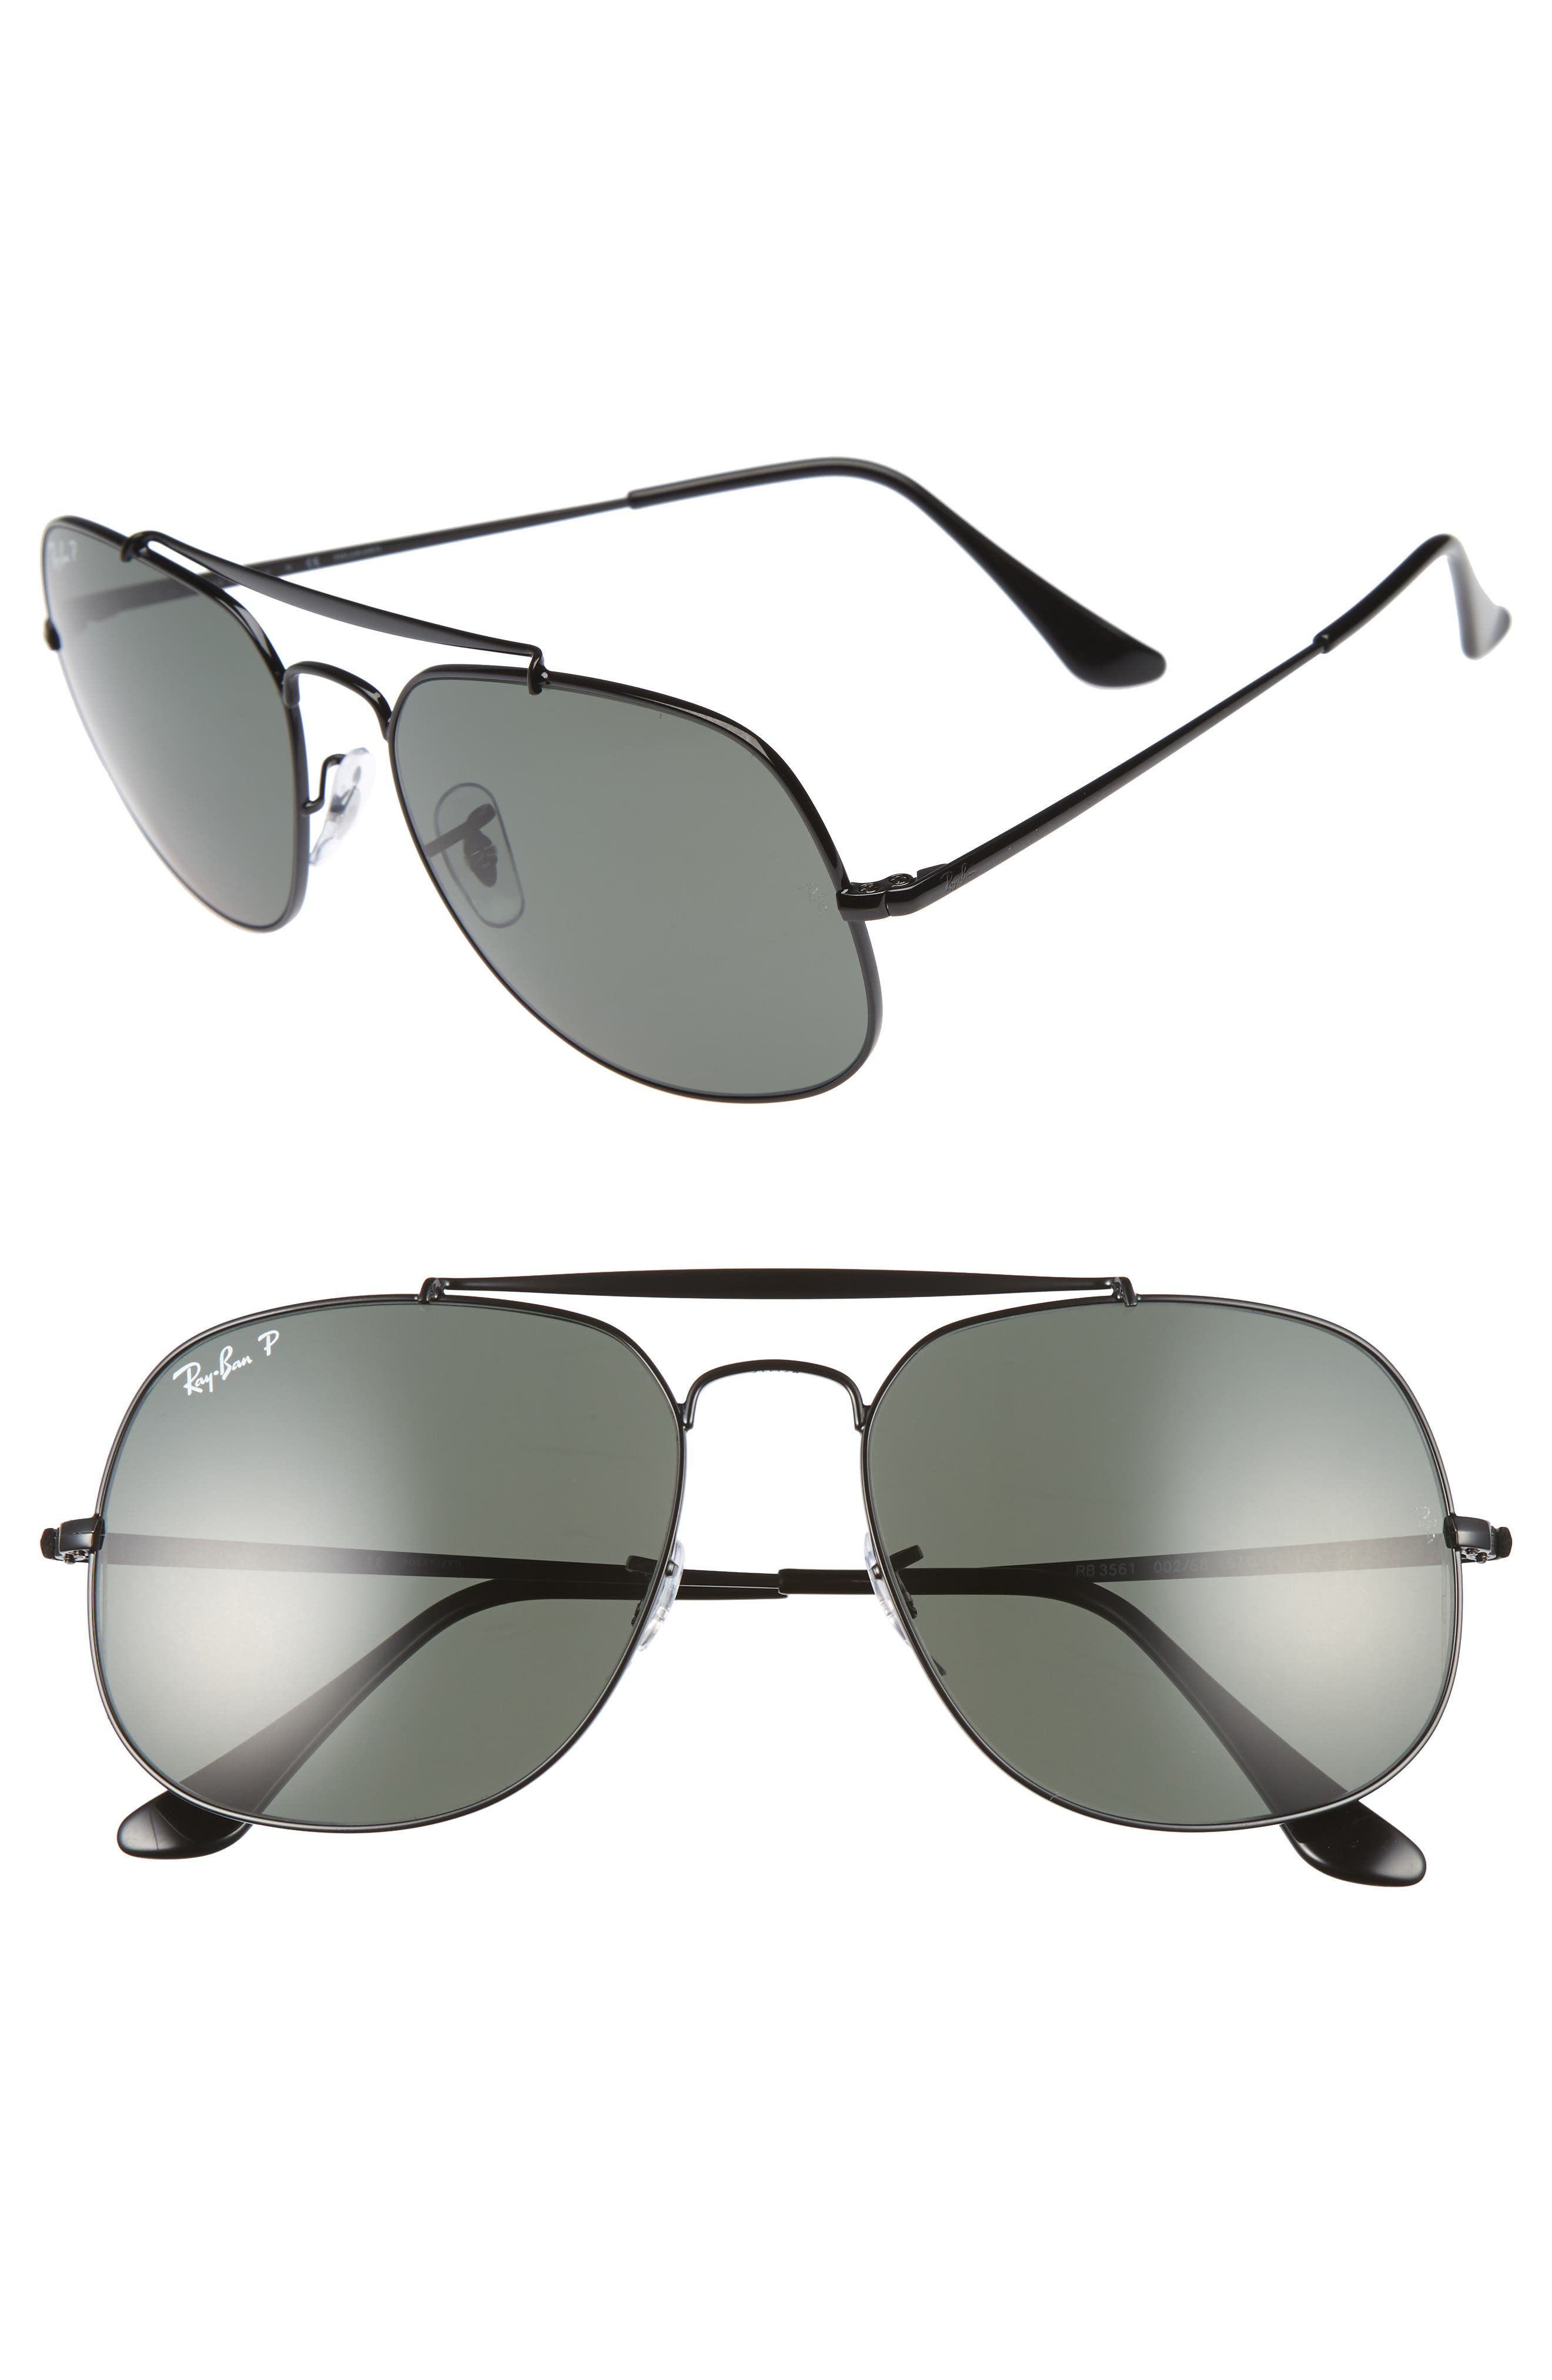 Ray-Ban The General 57Mm Polarized Sunglasses -